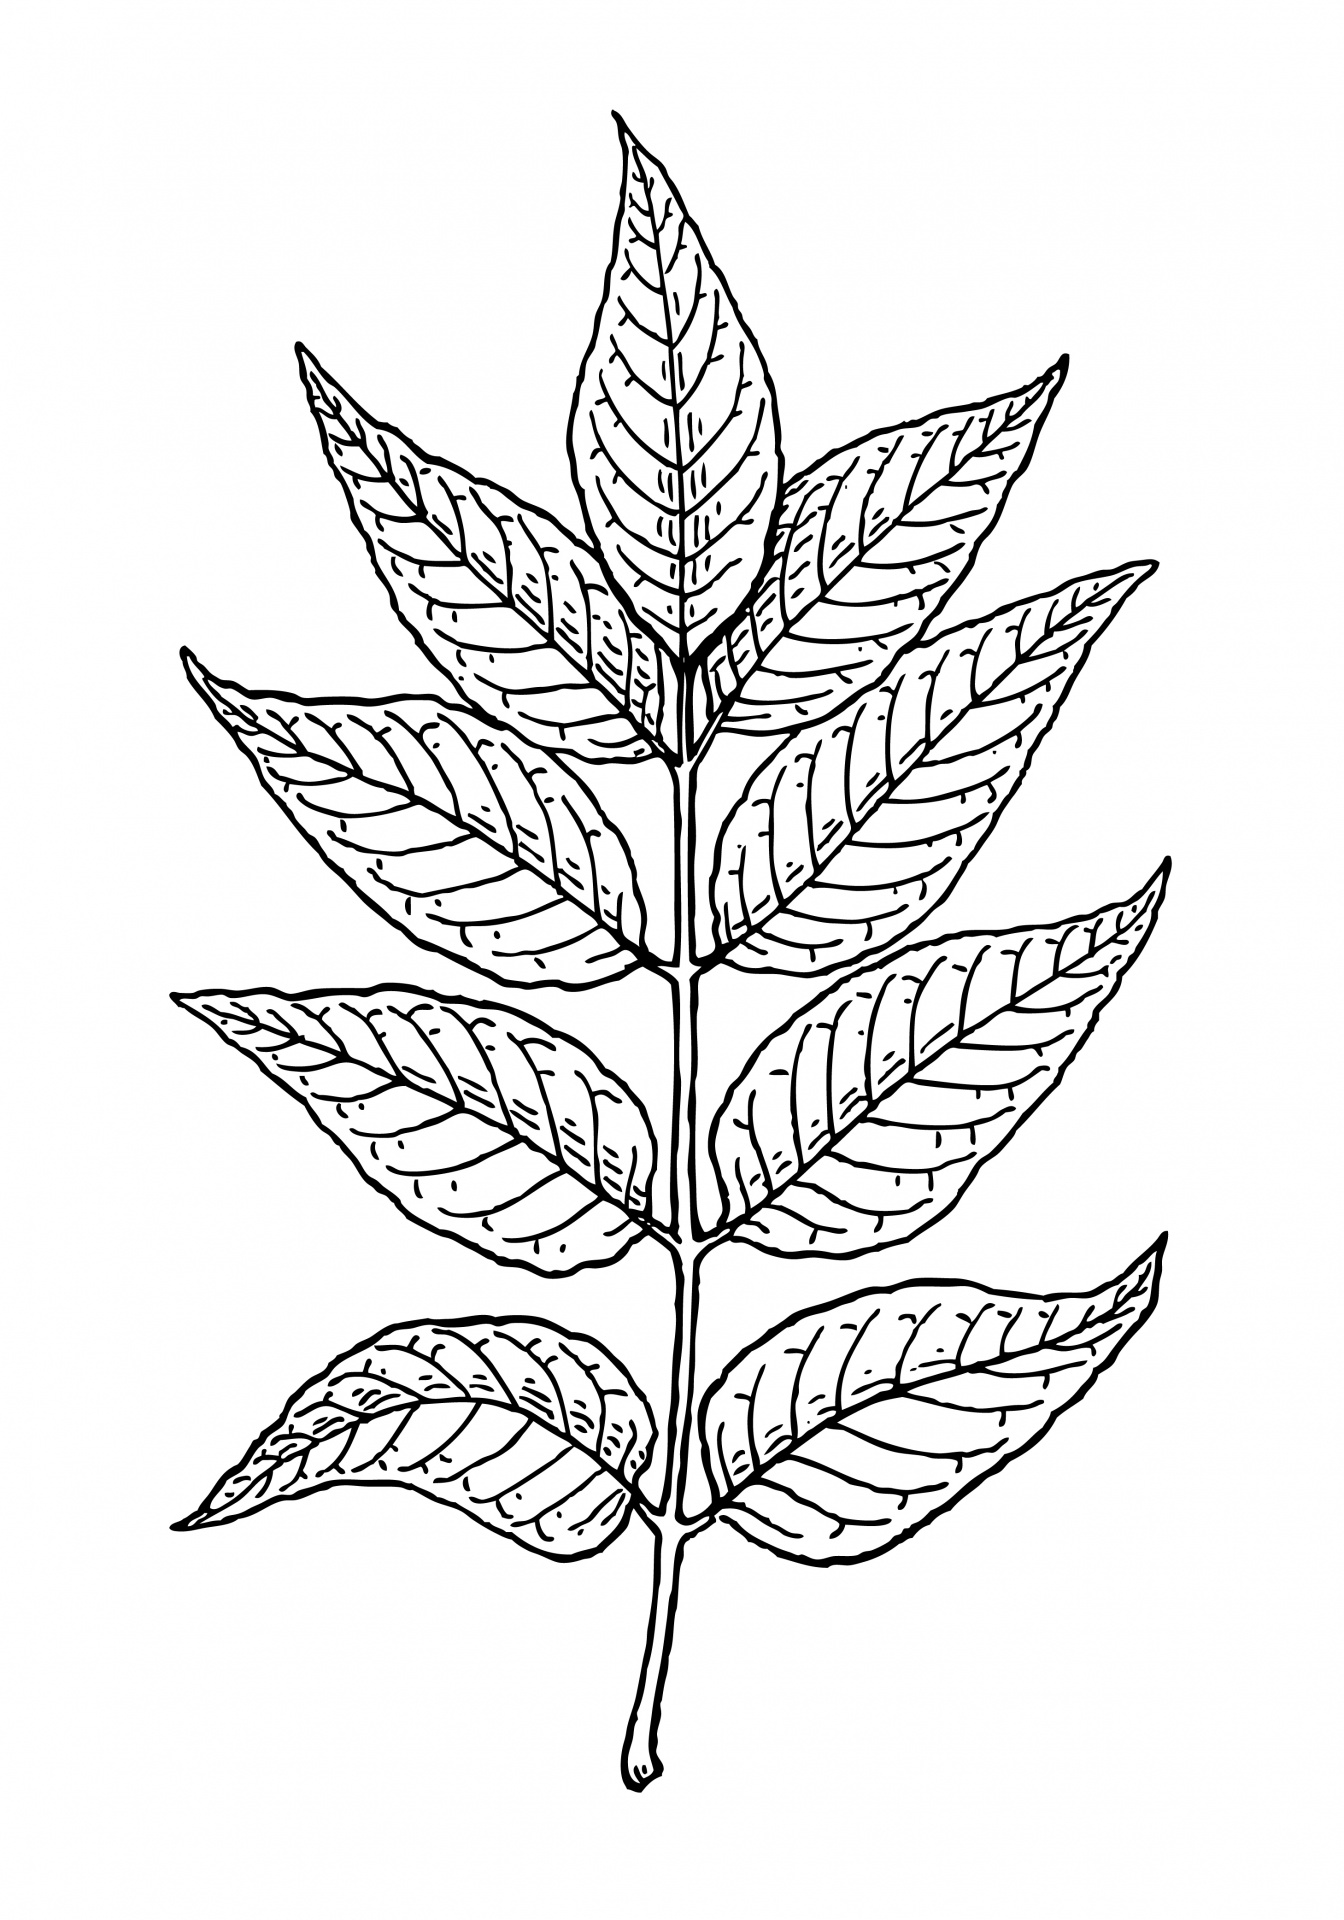 Leaves Of Ash Tree Clipart Free Stock Photo